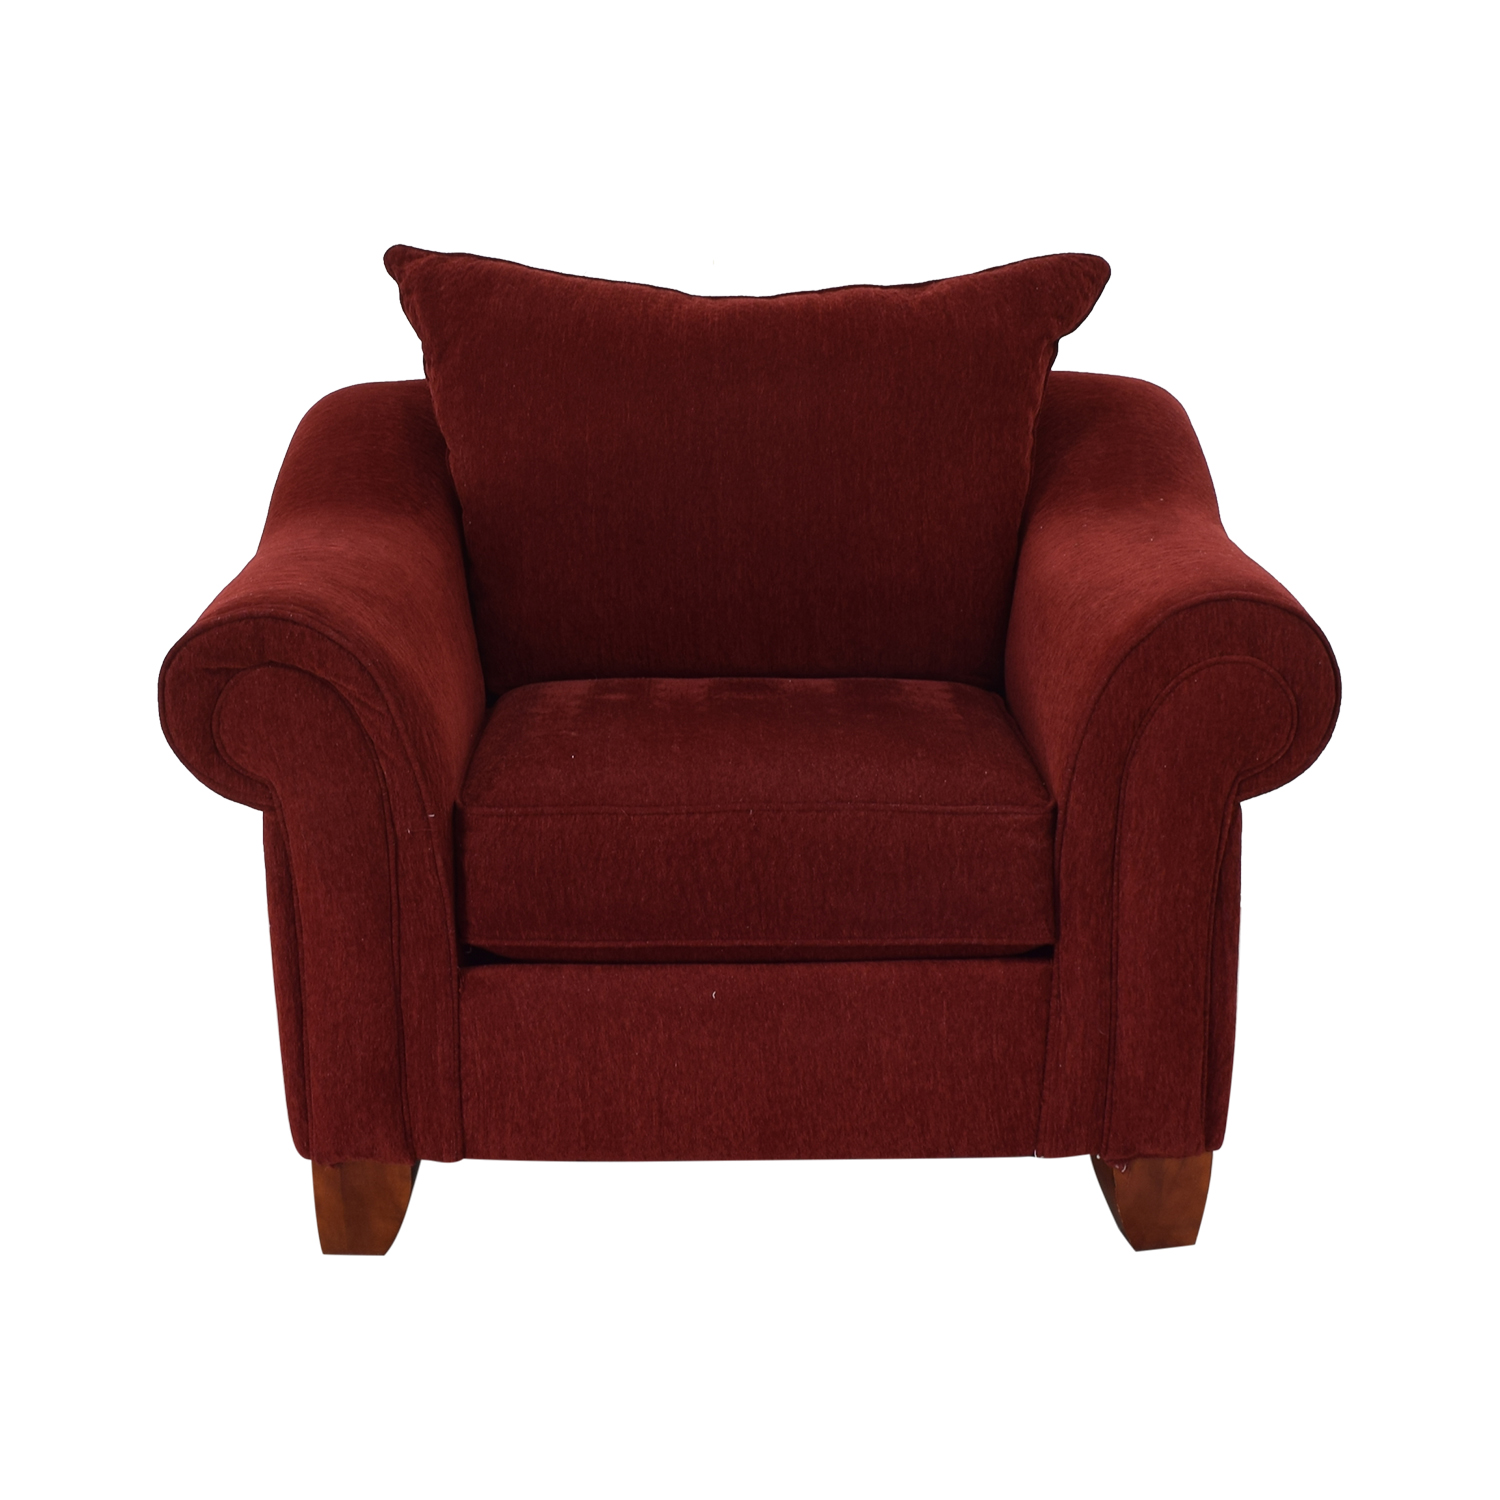 shop Raymour & Flanigan Red Arm Accent Chair Raymour & Flanigan Accent Chairs